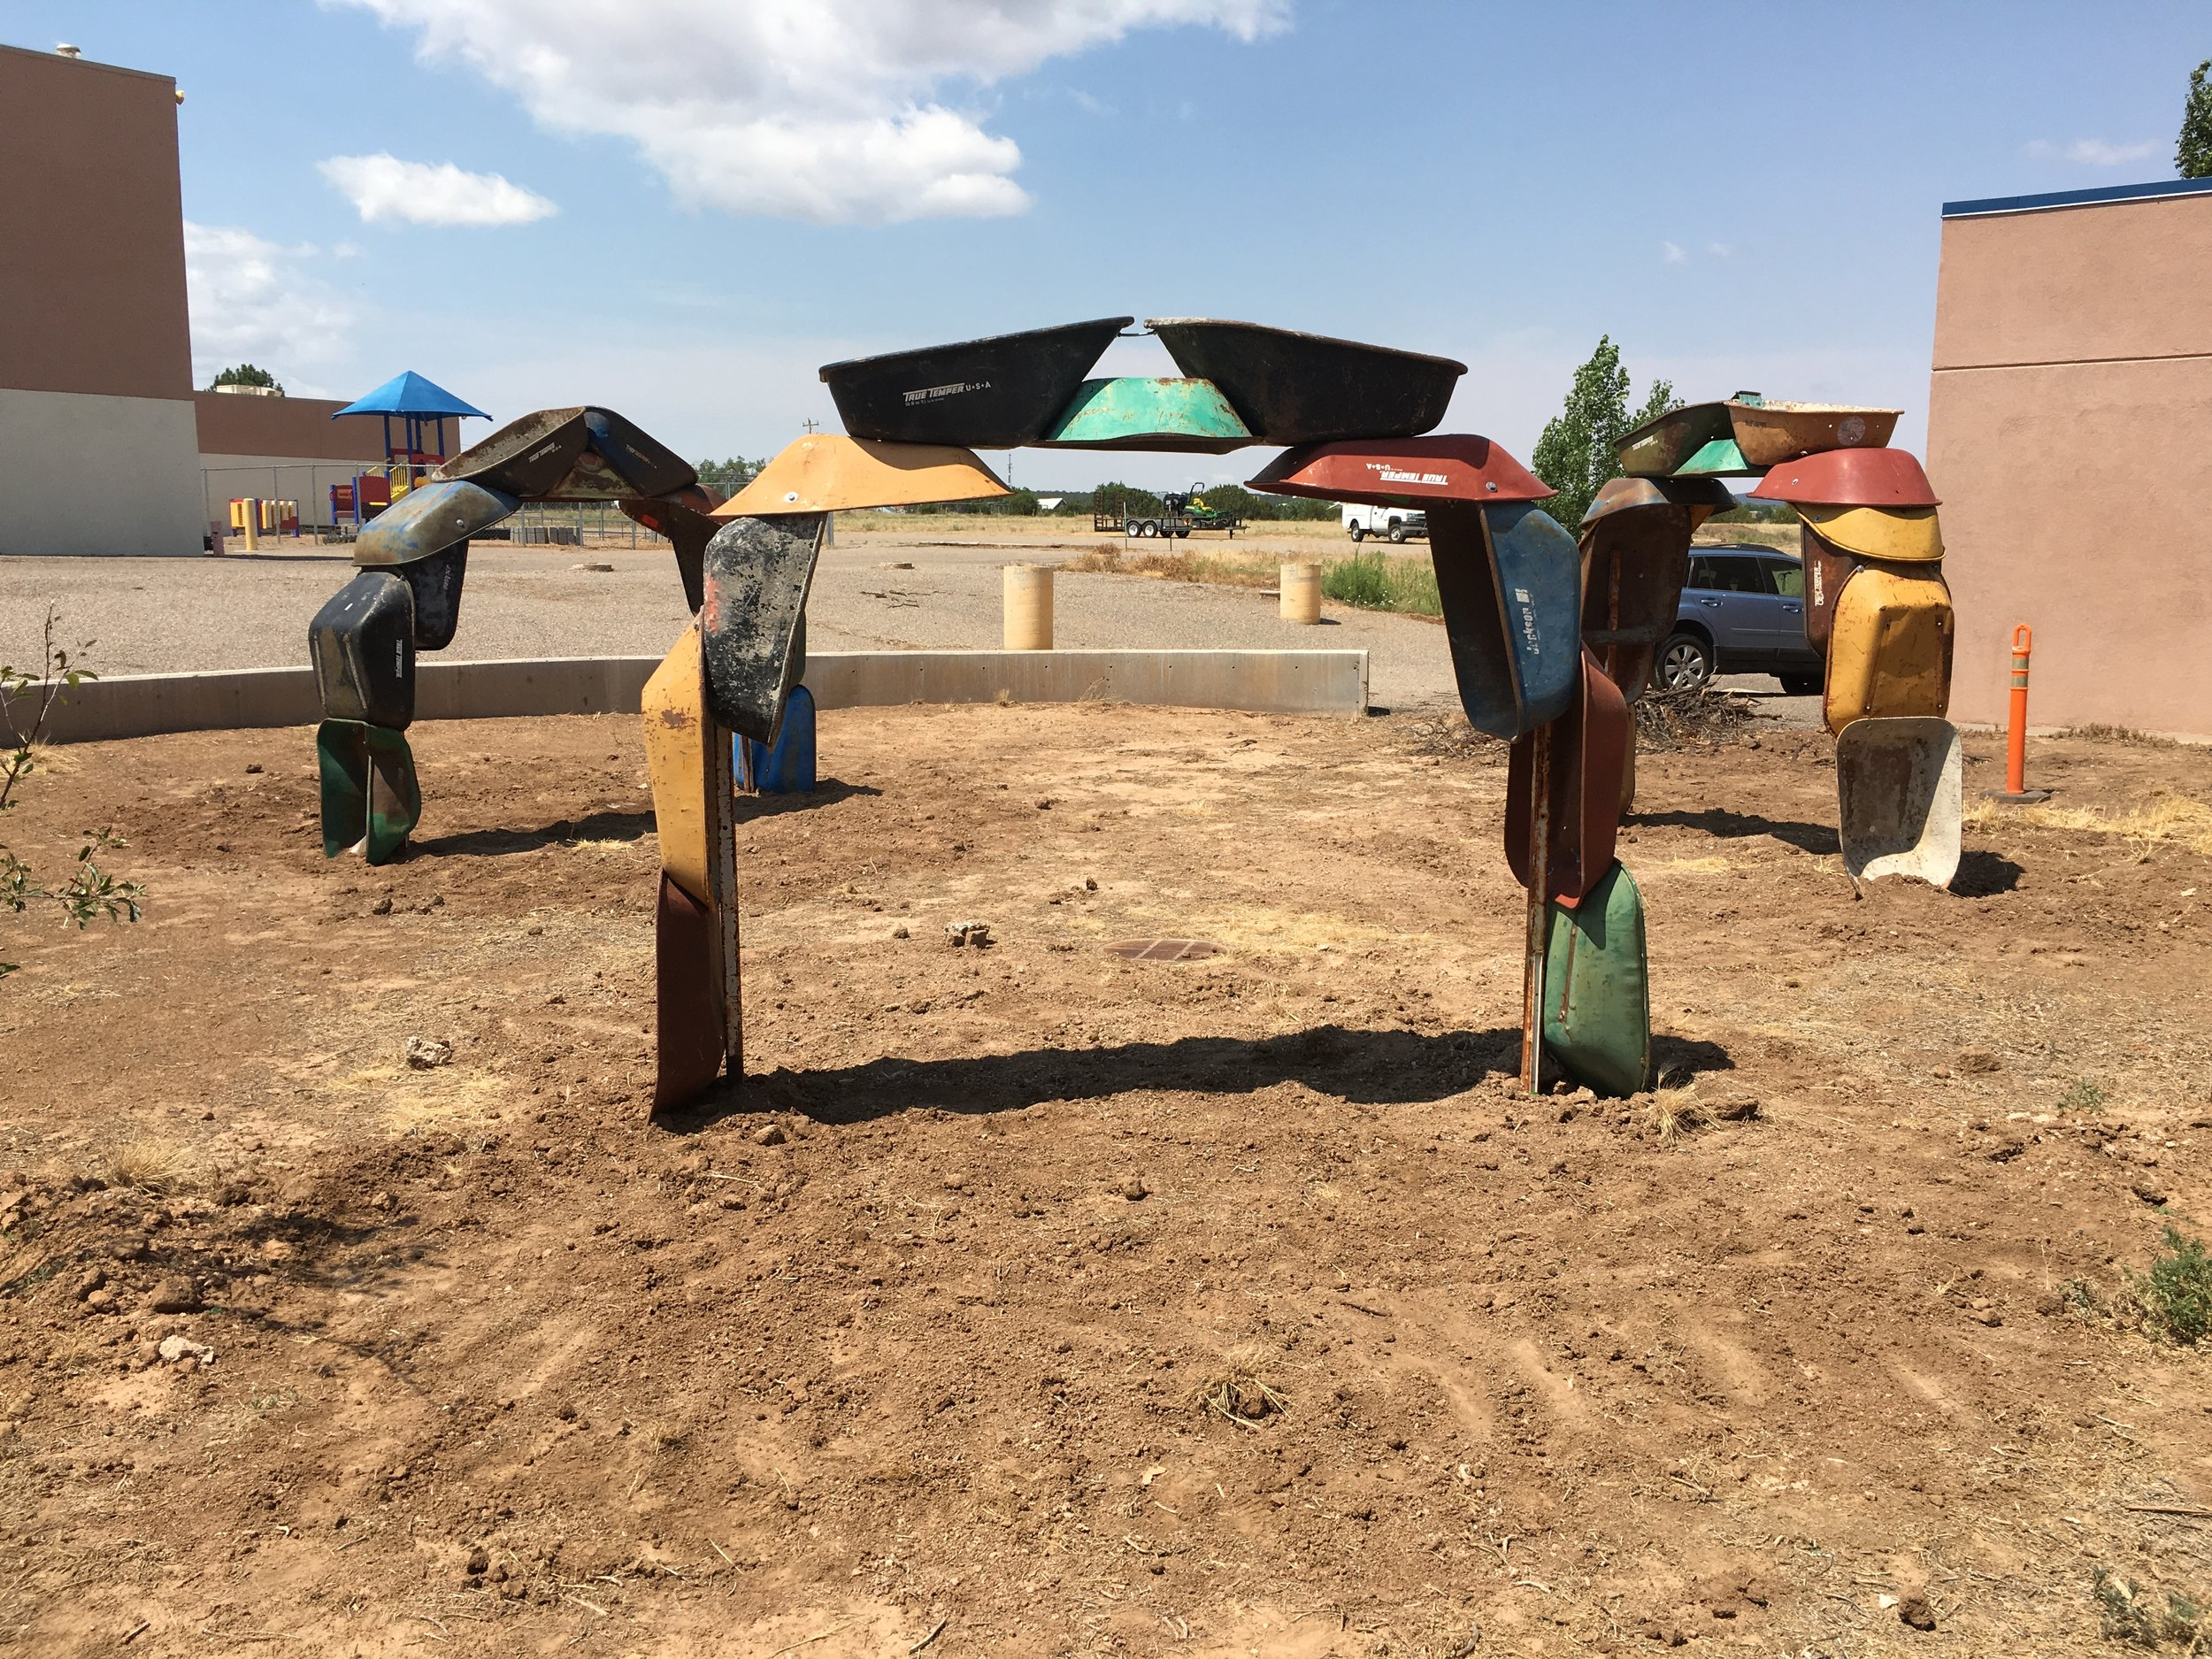 """Willis, Joshua, """"Barrowhenge,"""" Commissioned by NM Arts, Part of T.I.M.E. (Temporary Installation Made for the Environment), Edgewood Public Library, 2017"""